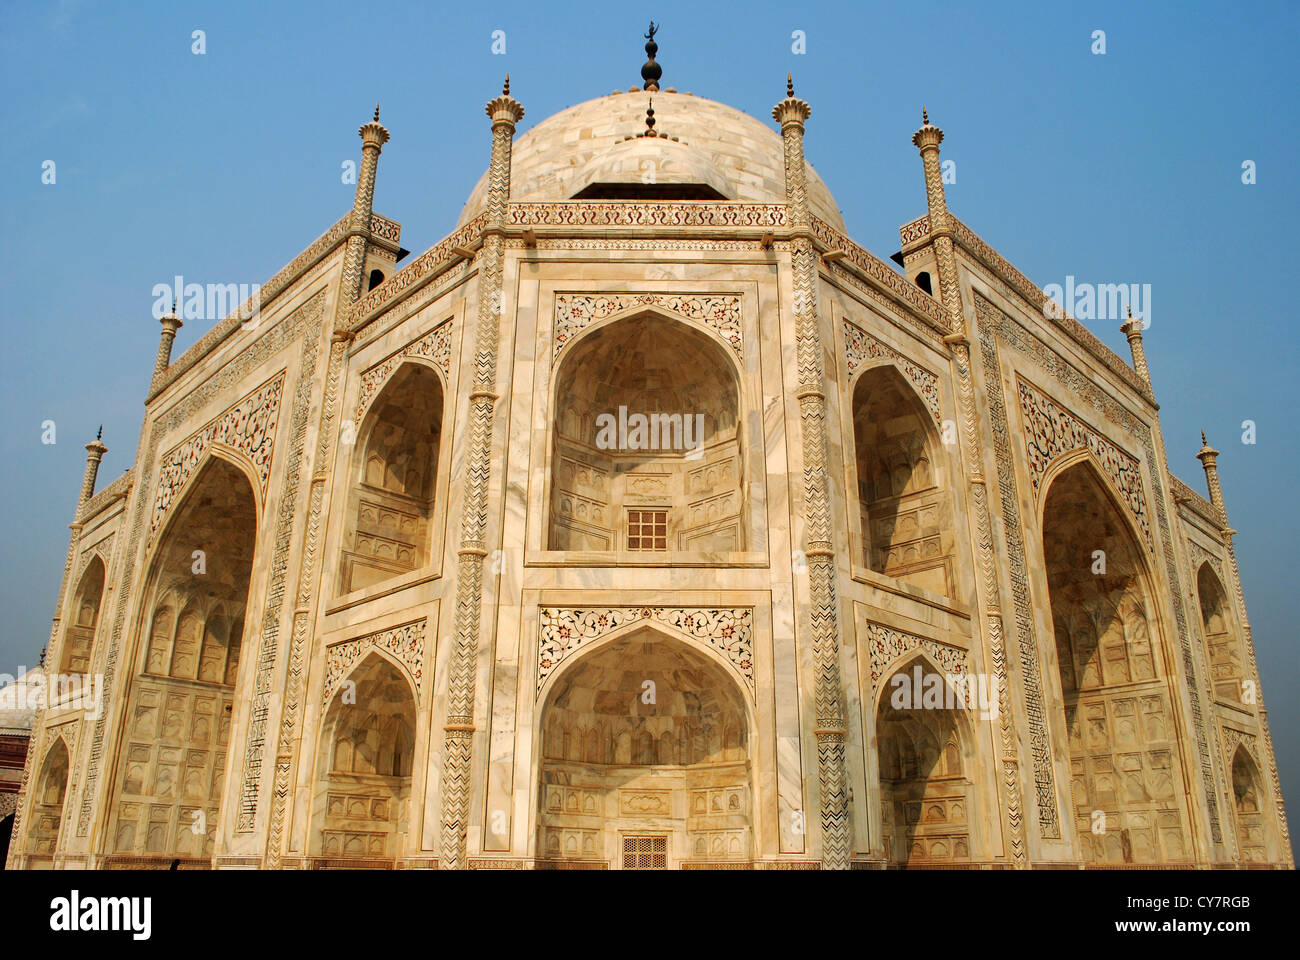 Stock Photo   taj mahal close up  agra india  this marble architecture is  one of the most beautiful buildings of the worldtaj mahal close up  agra india  this marble architecture is one of  . Most Beautiful Architecture In India. Home Design Ideas